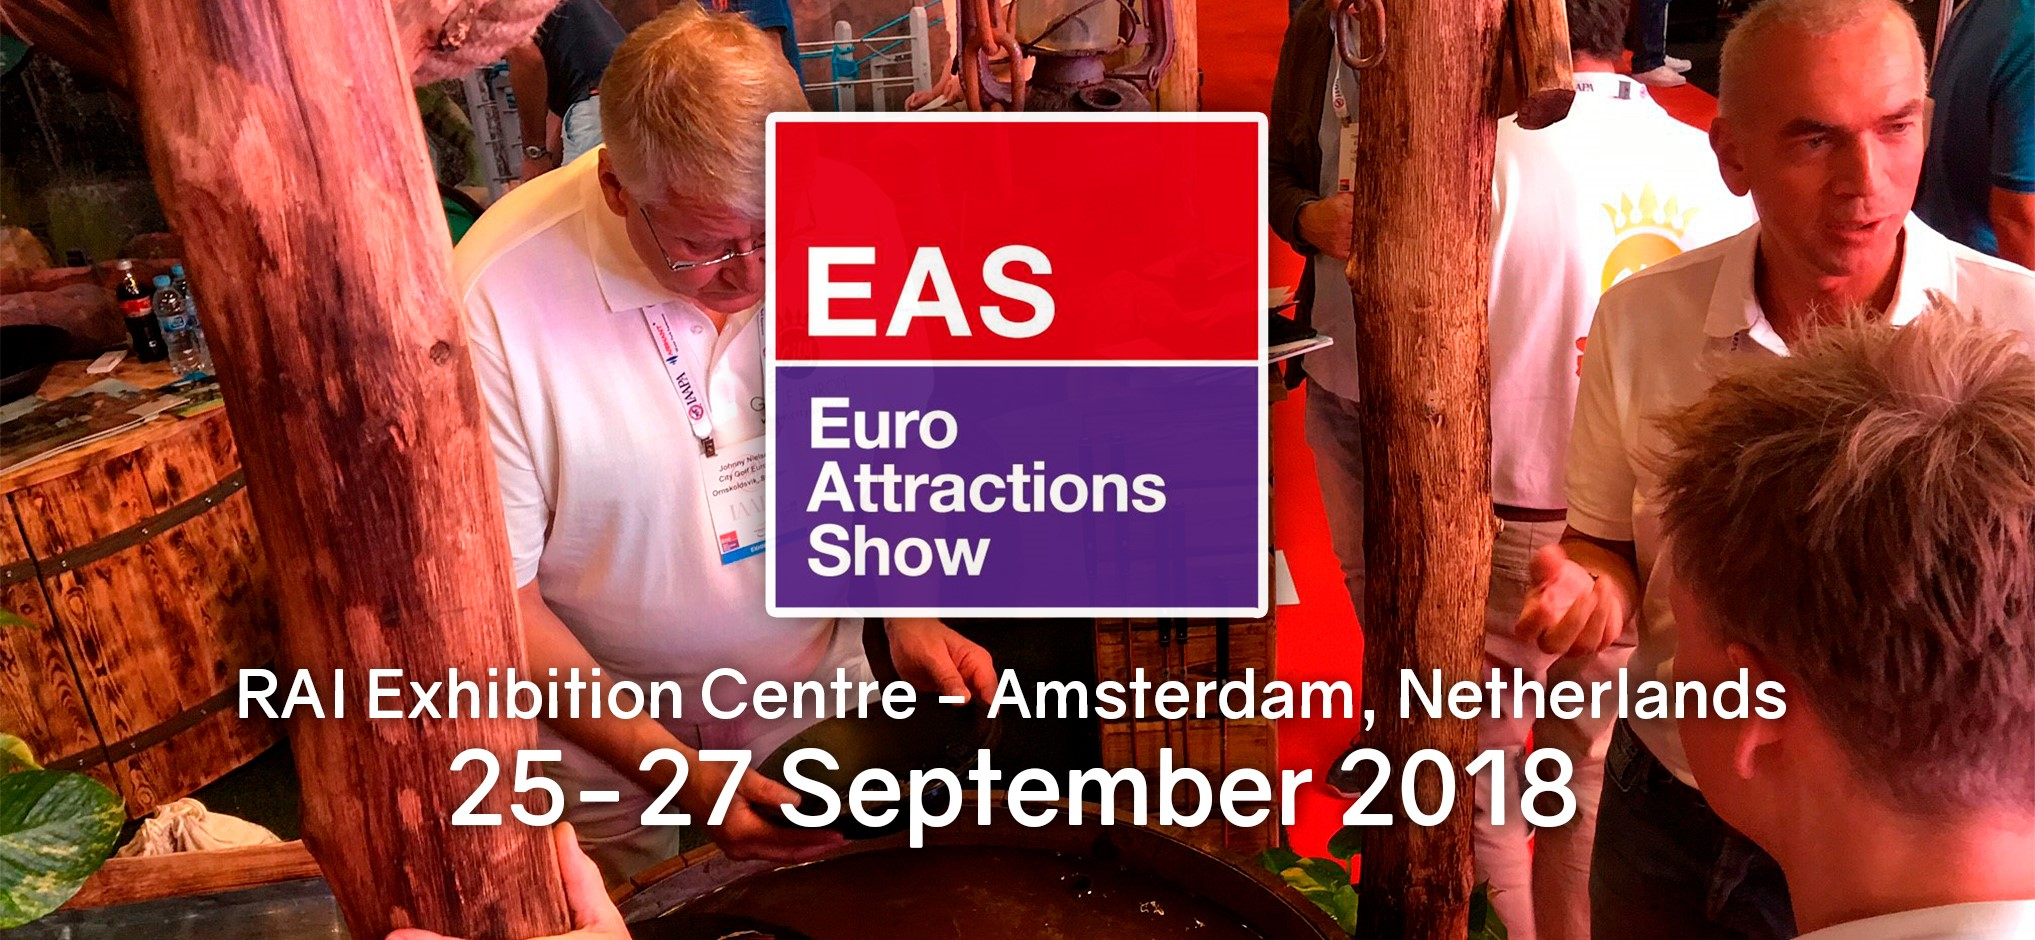 Meet City Golf Europe at Euro Attractions Show 2018